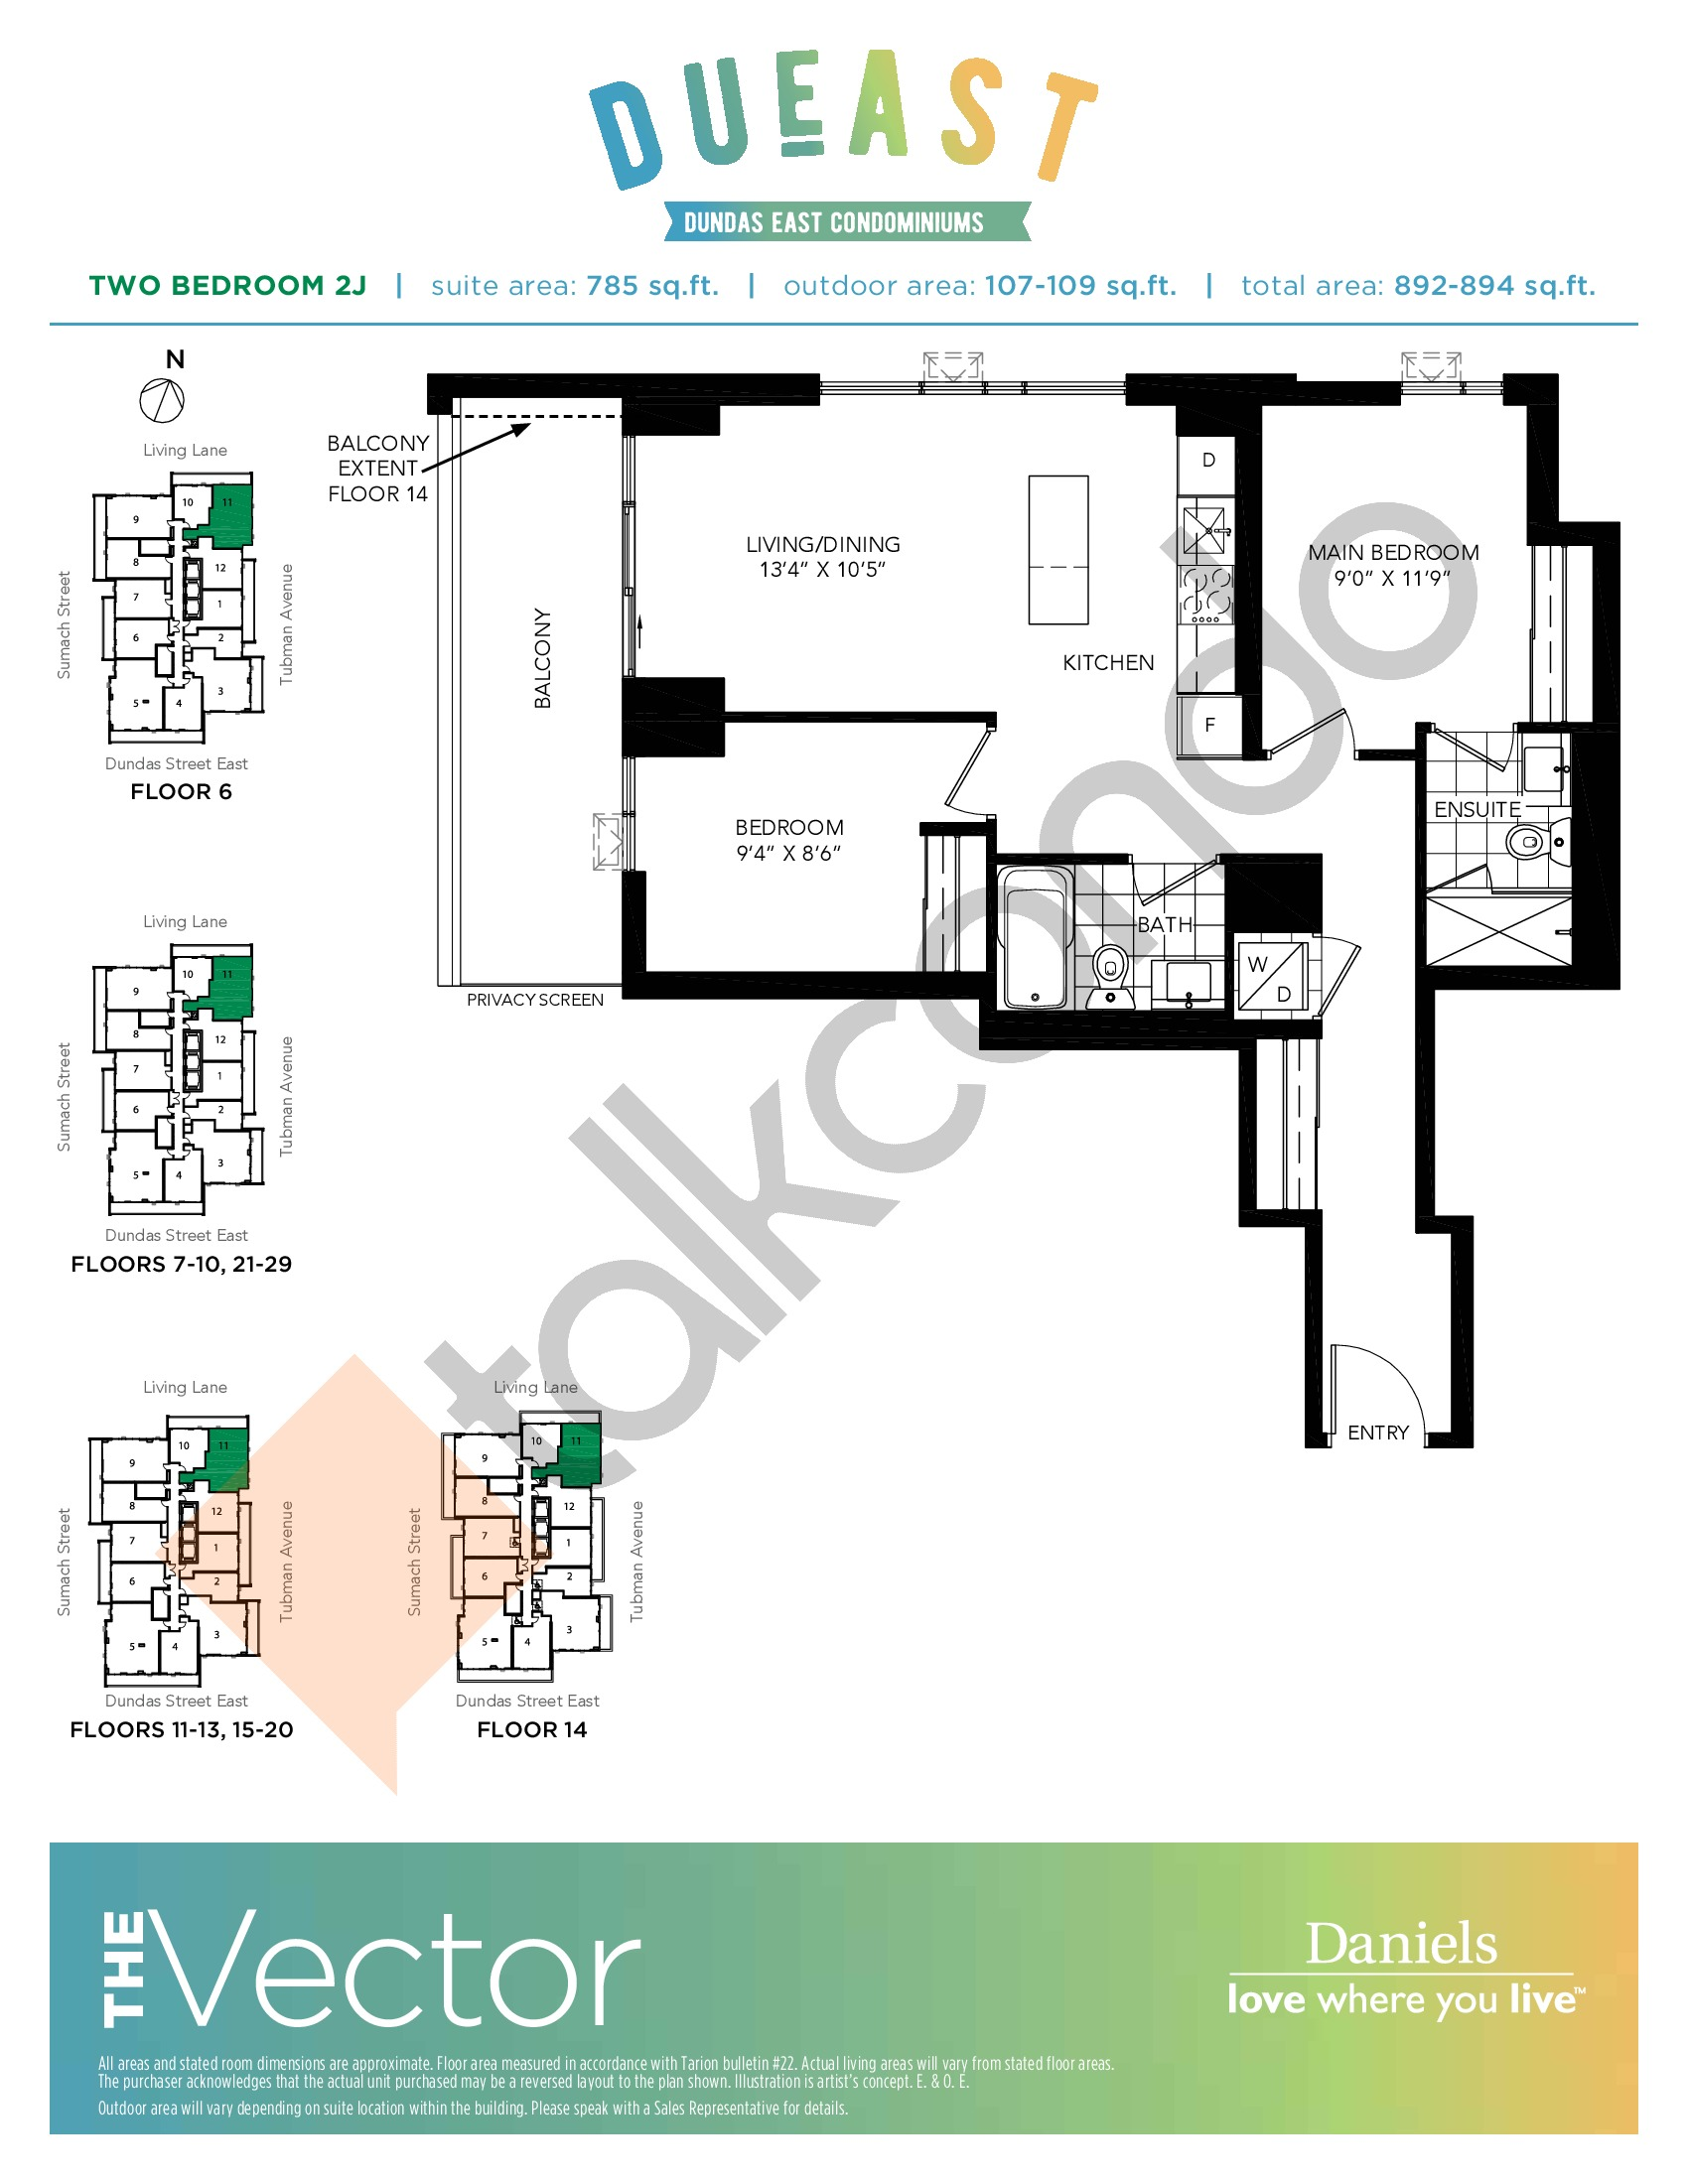 The Vector (2J) Floor Plan at DuEast Condos - 785 sq.ft